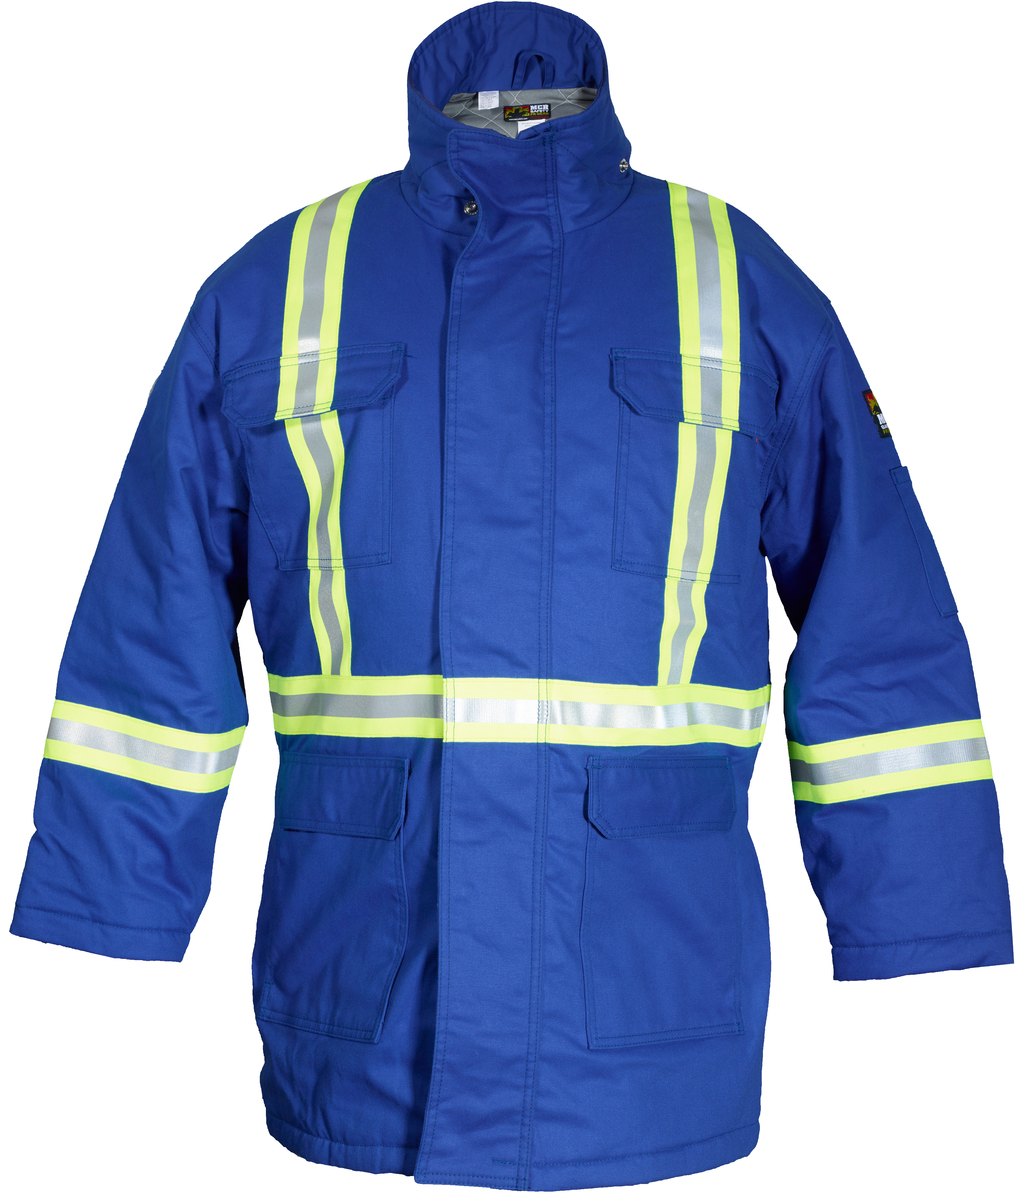 Flame Resistant (FR) Extreme Climate Insulated Parka, Max Comfort ™ Material, Modacrylic quilted lining with wind/vapor barrier.